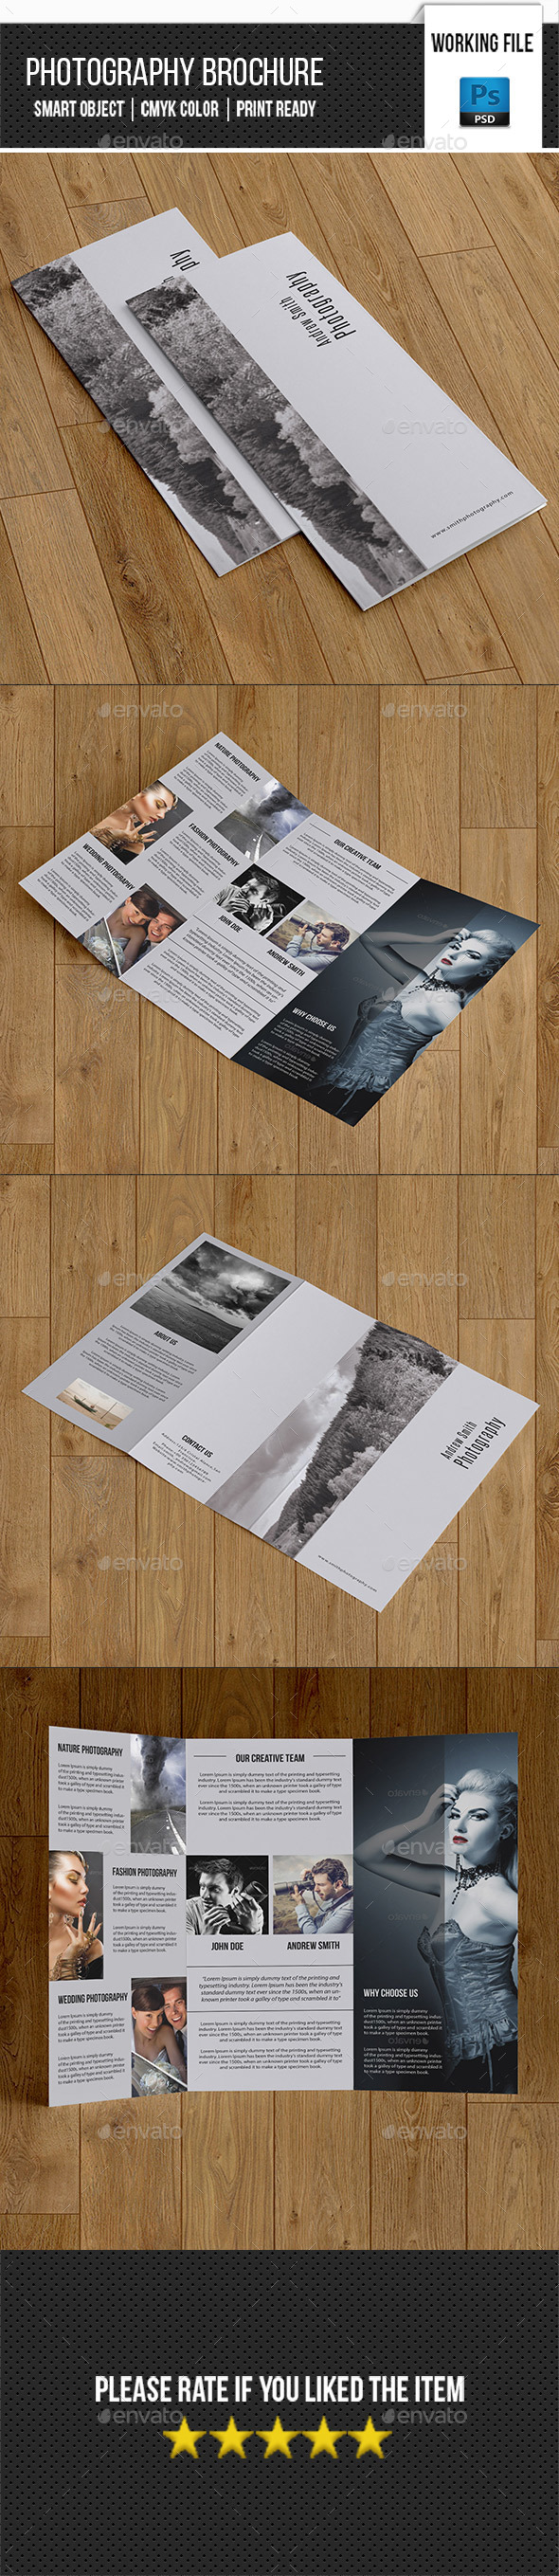 Minimal Photography Trifold Brochure-V258 - Corporate Brochures